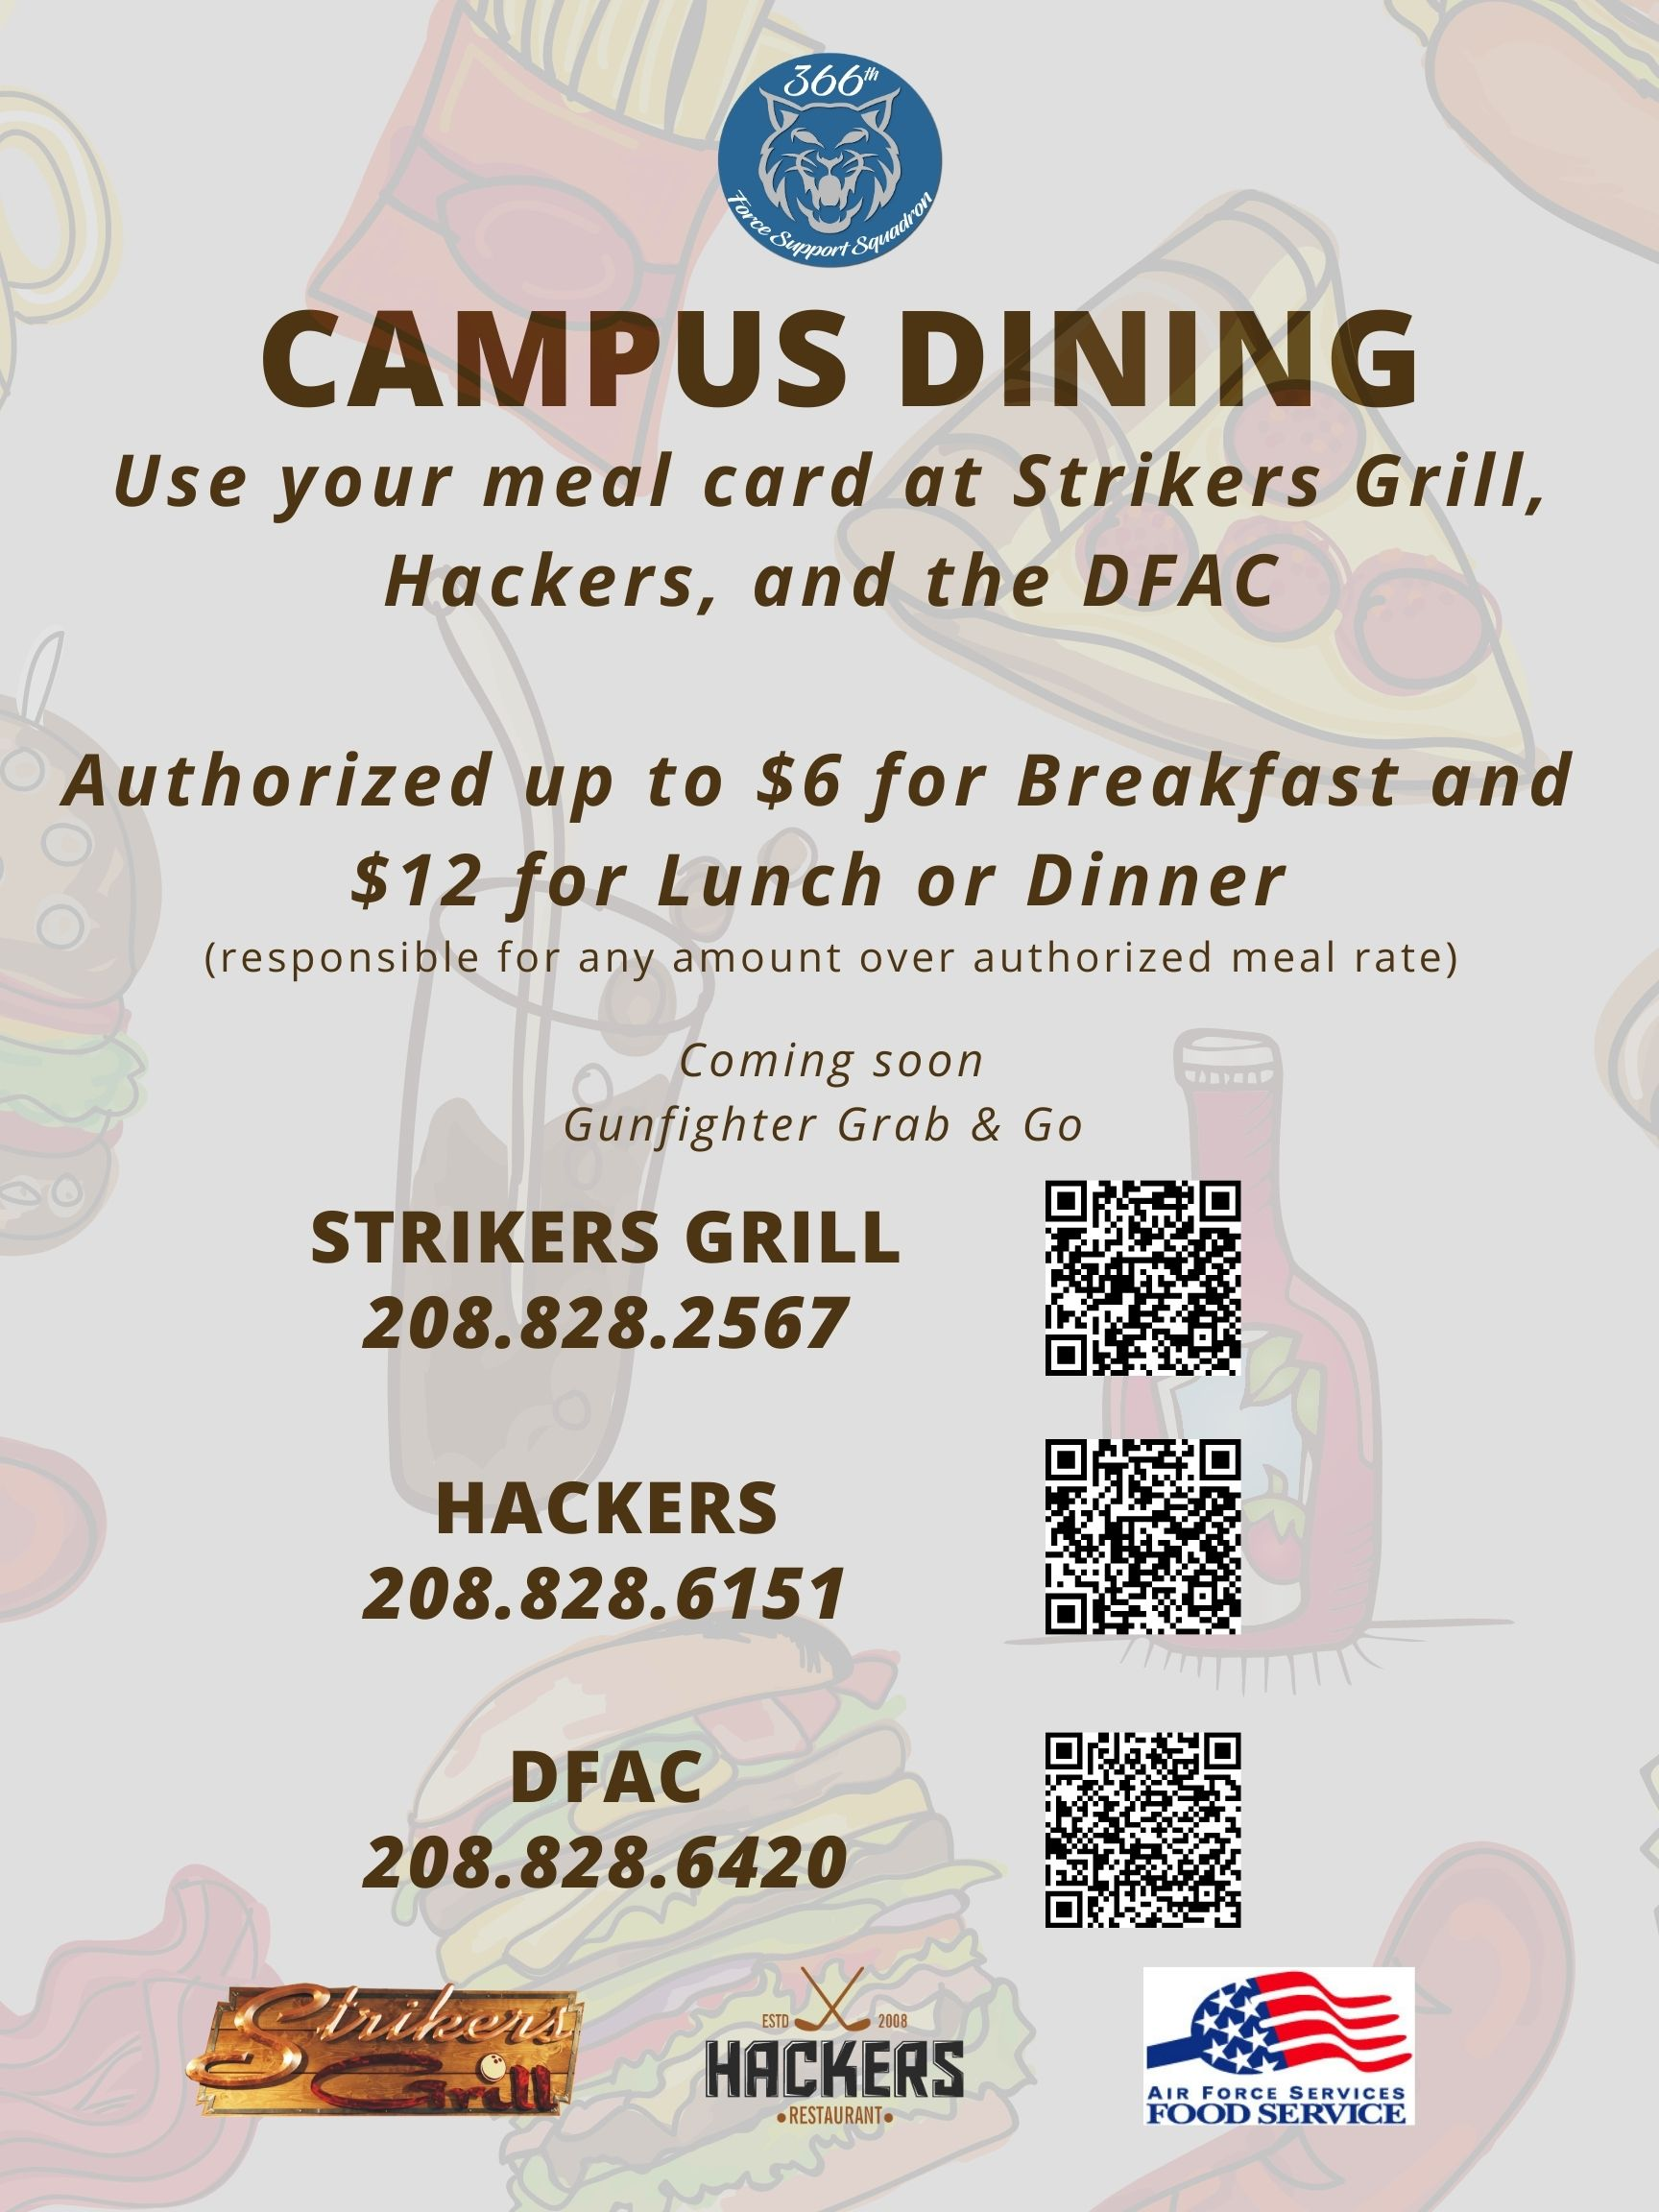 MHAFB first base in ACC to initiate Campus Dining System